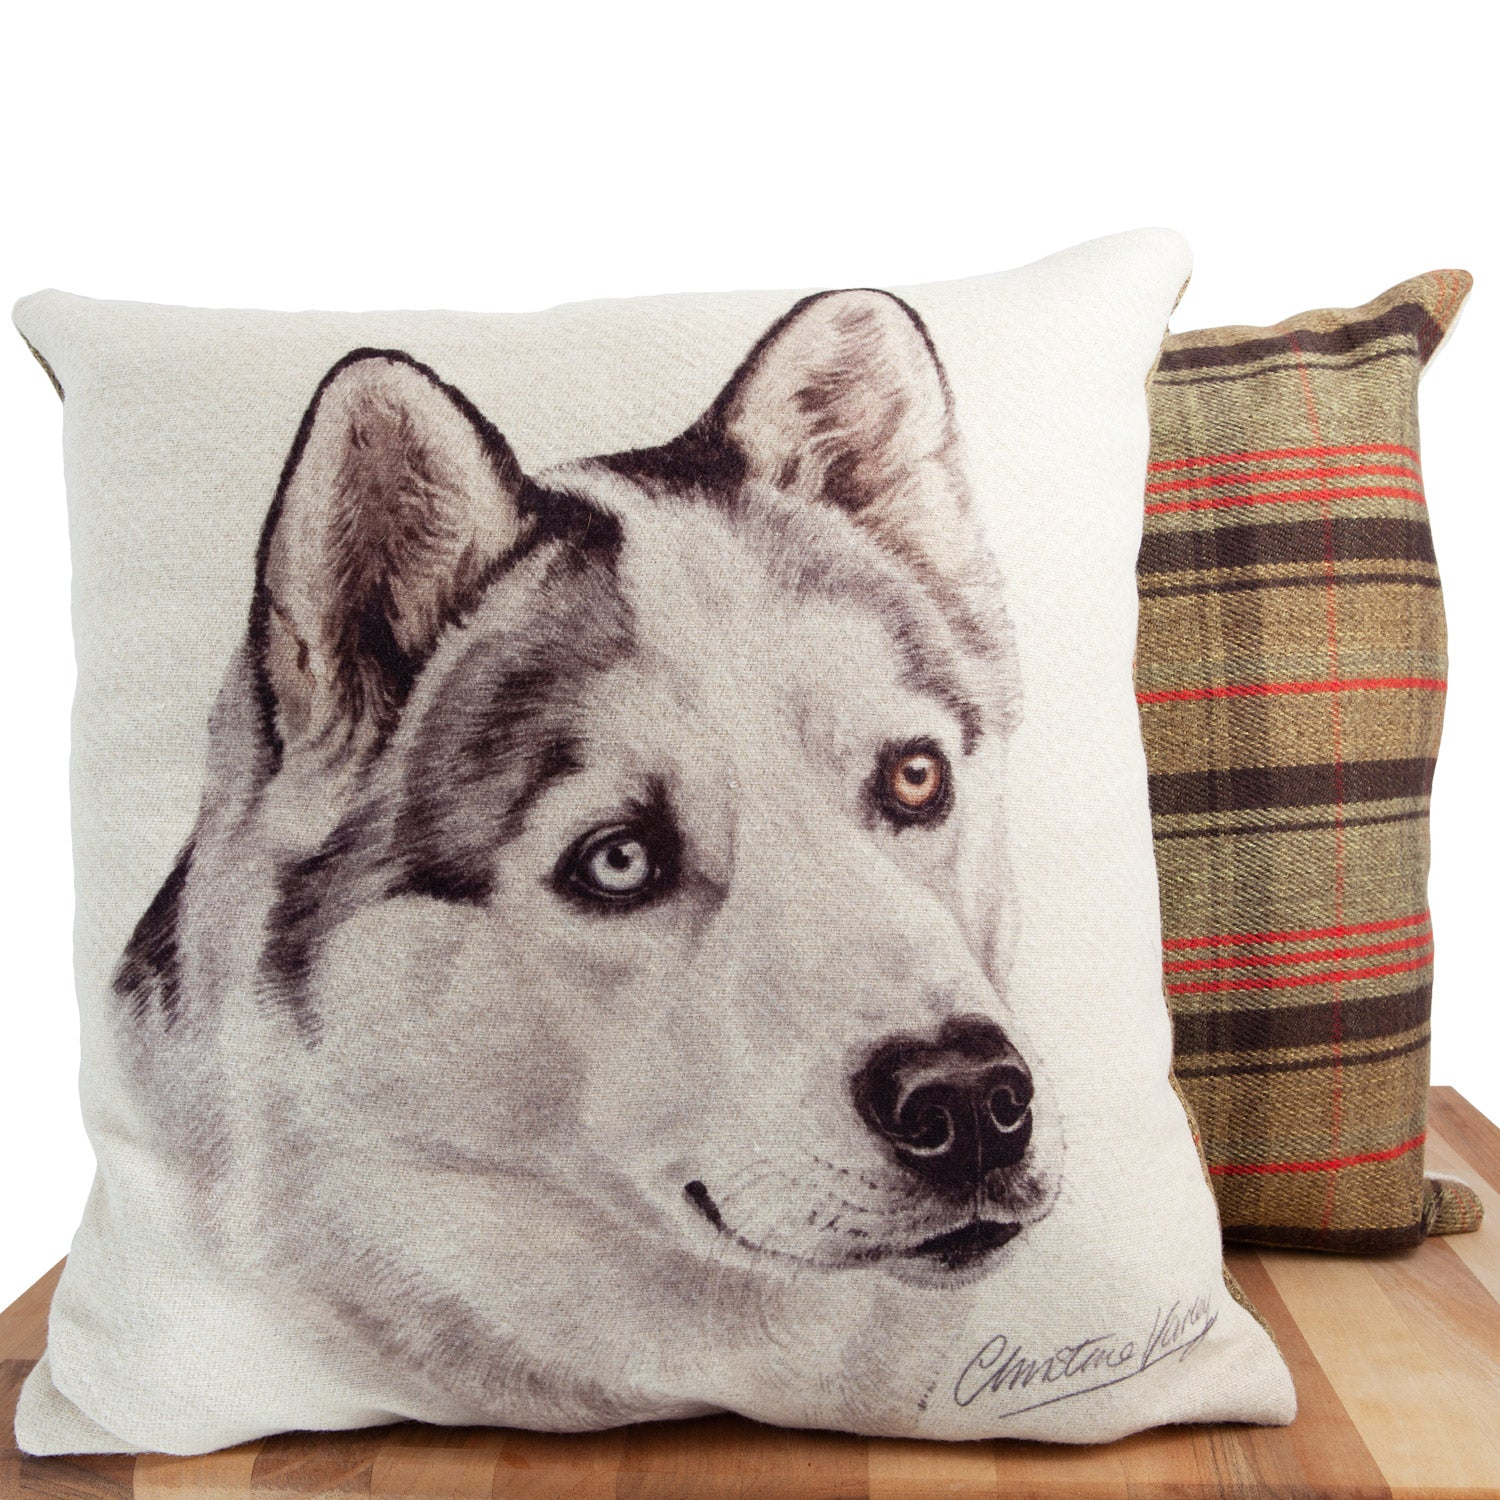 Dog Lover Gifts available at Dog Krazy Gifts. Husky Cushion, part of our Christine Varley collection – available at www.dogkrazygifts.co.uk